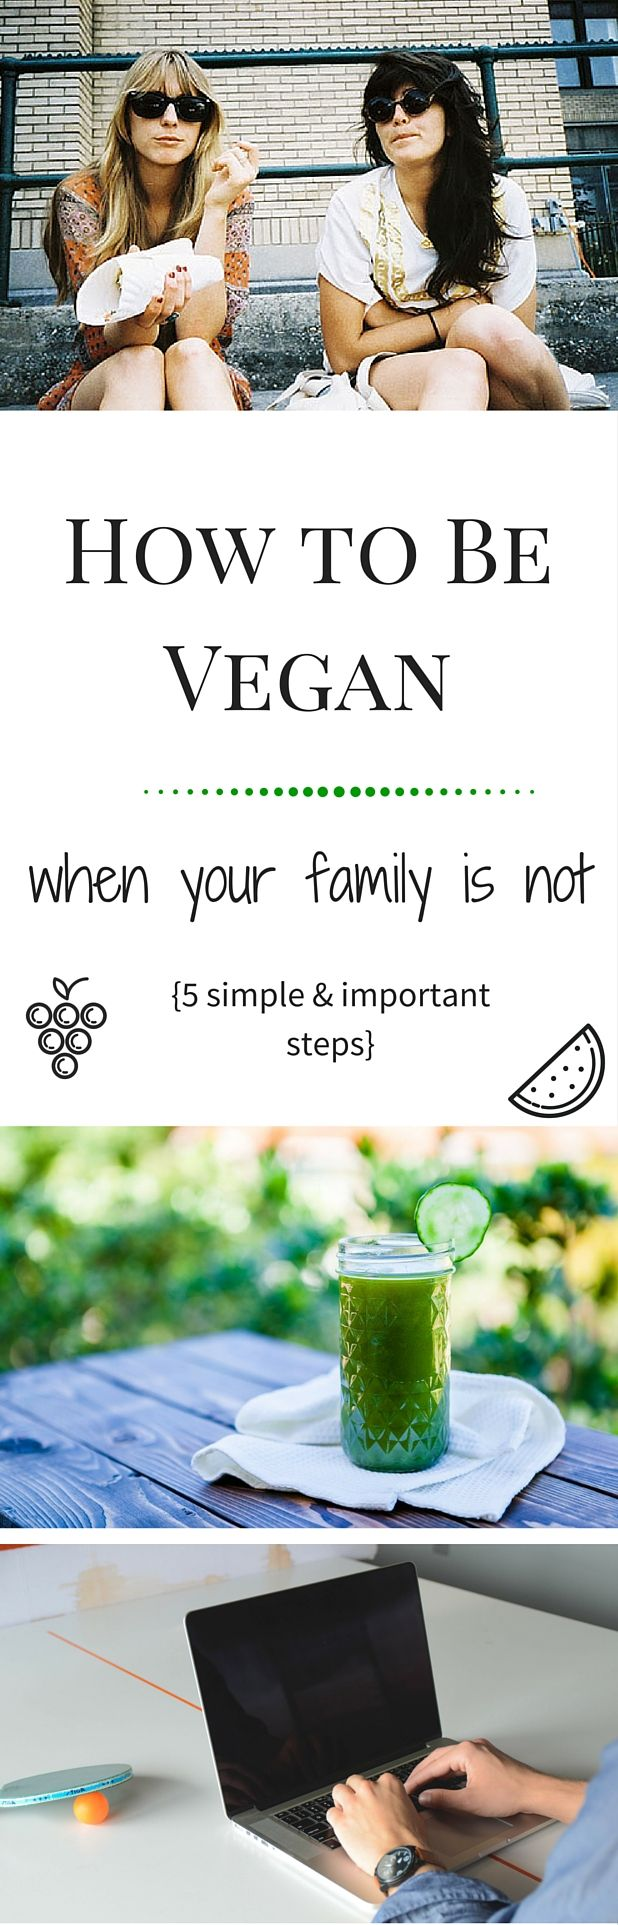 Want to go #vegan but your family isn't really supportive? Here's how to prepare and educate yourself.